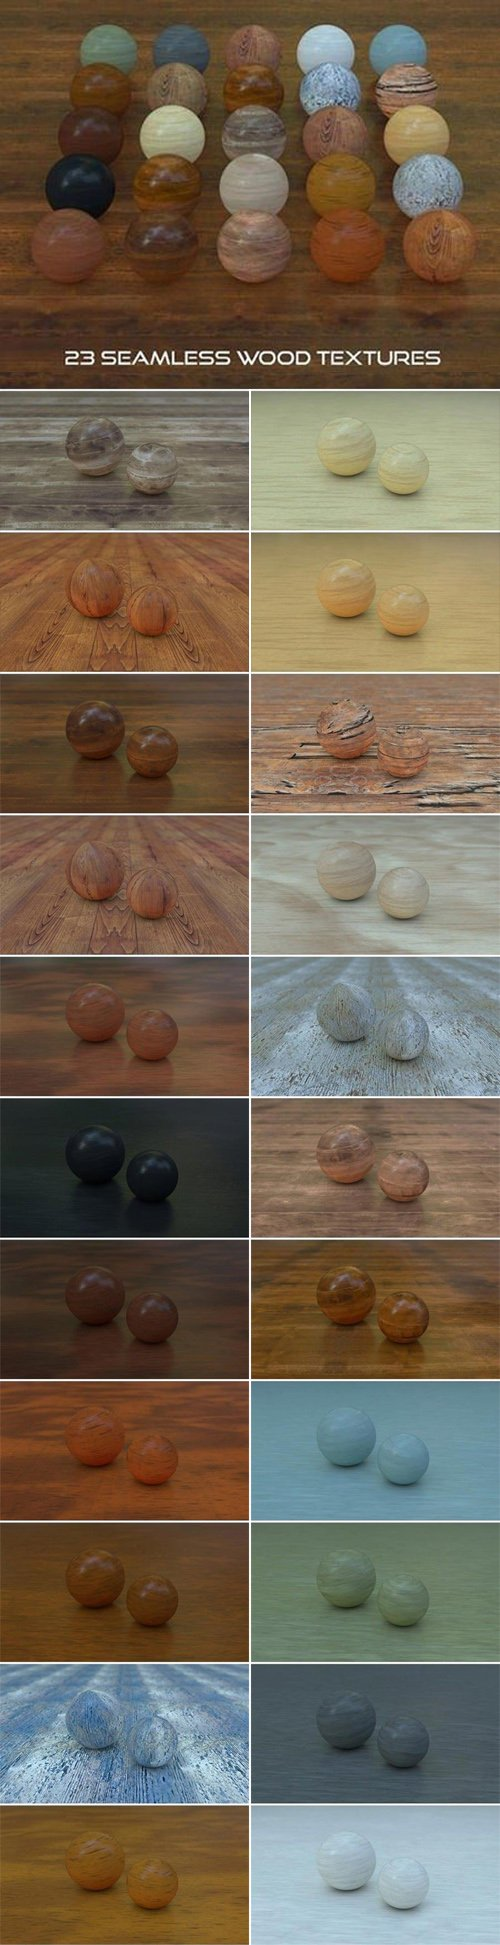 23 Seamless Wood Textures for Cinema 4D